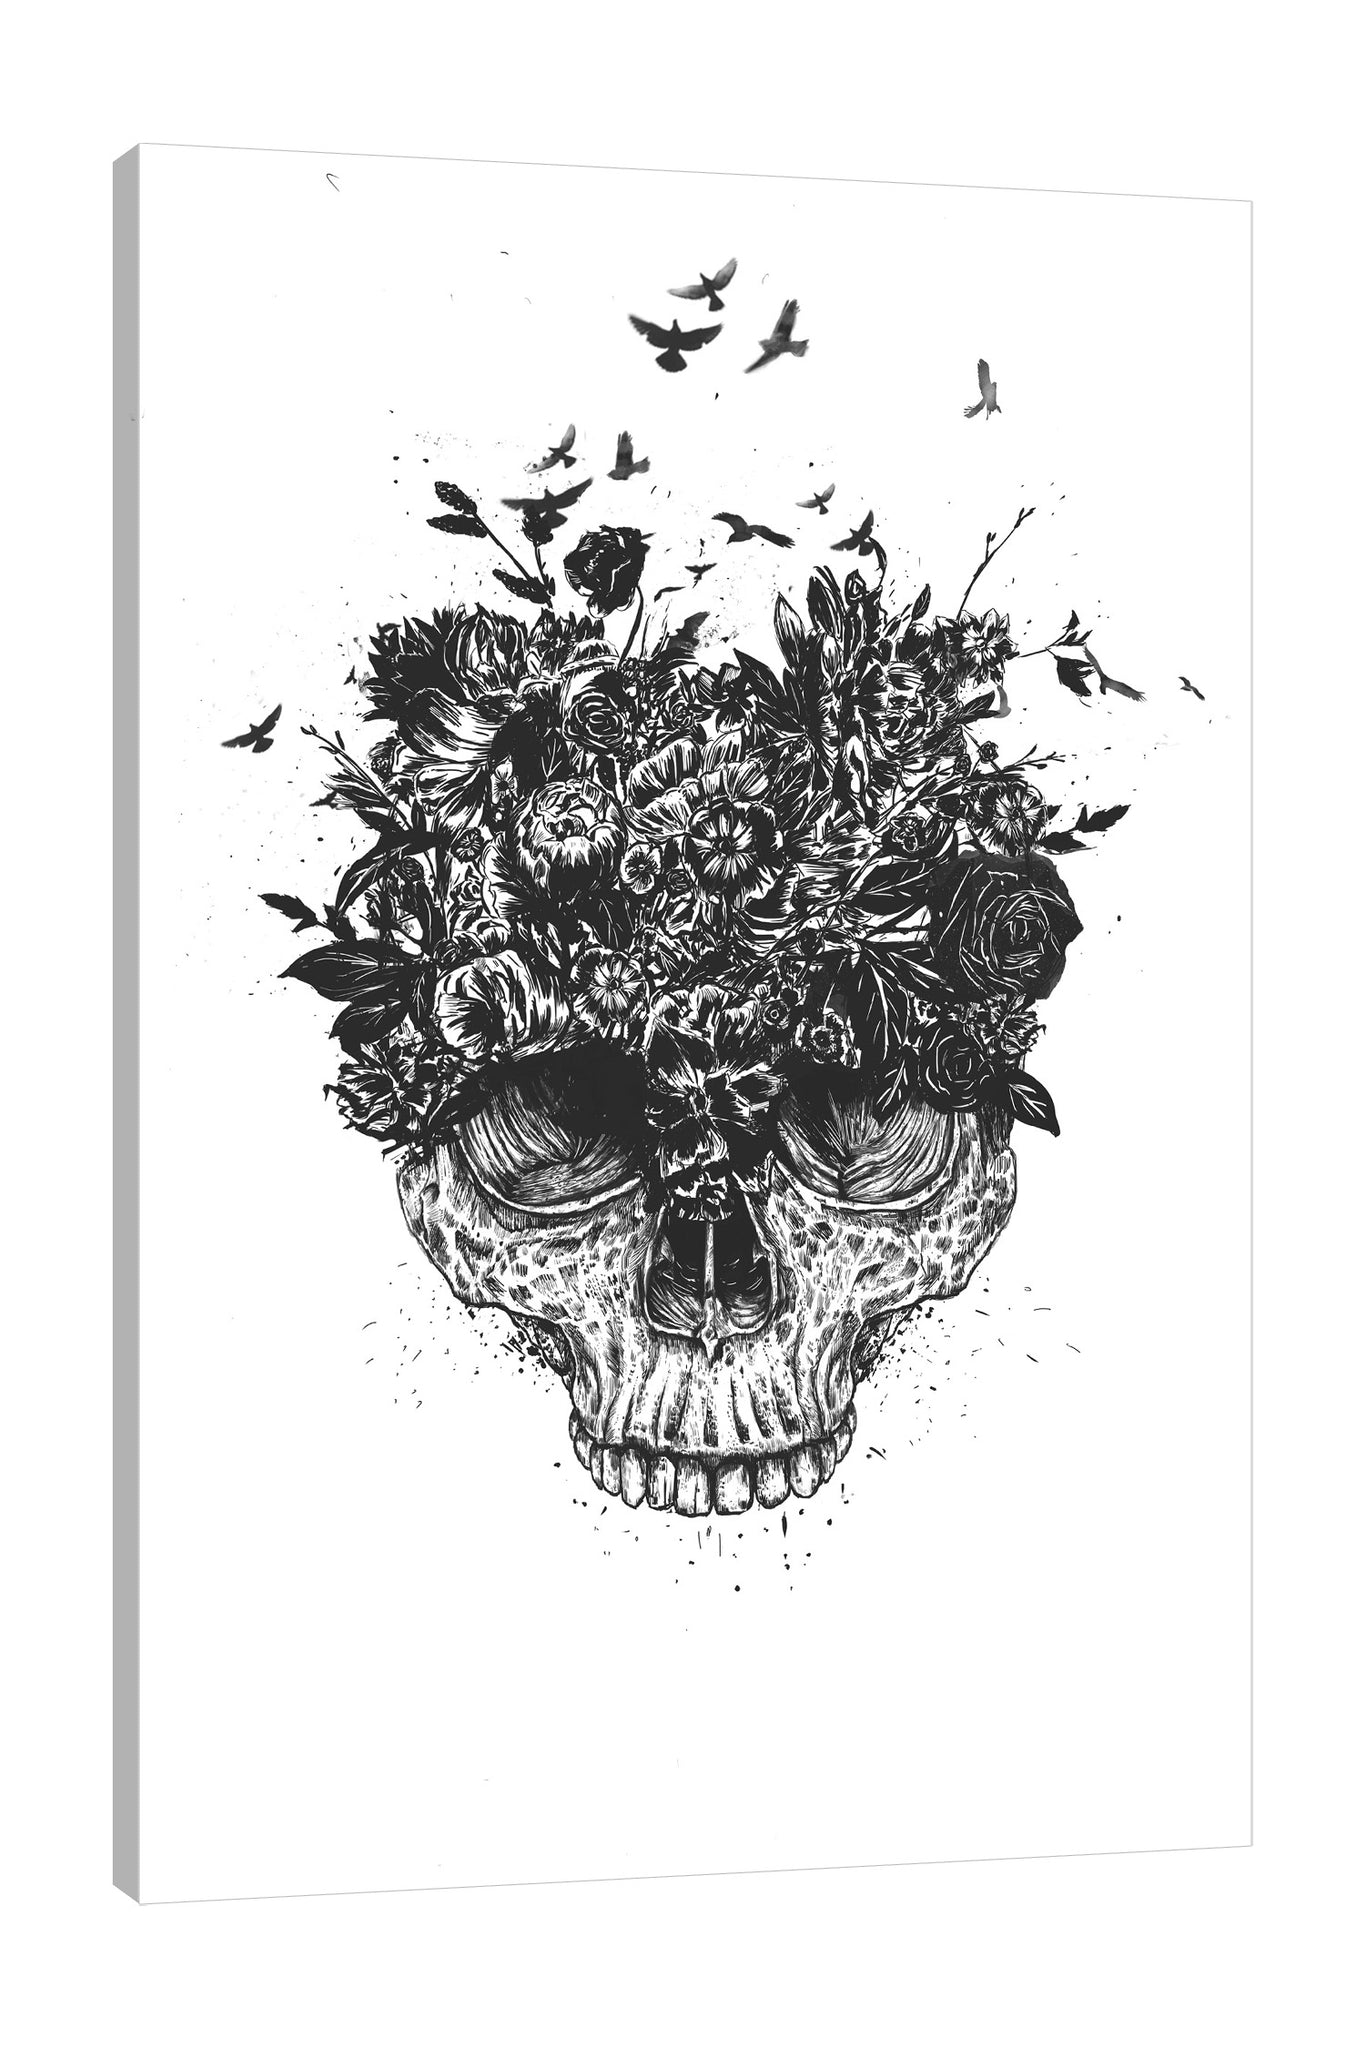 Balazs-Solti,Modern & Contemporary,Animals,Floral & Botanical,People,animals,animal,birds,bird,bones,bone,skulls,skull,floral,florals,flower,flowers,black and white,Tan Orange,Charcoal Gray,Red,White